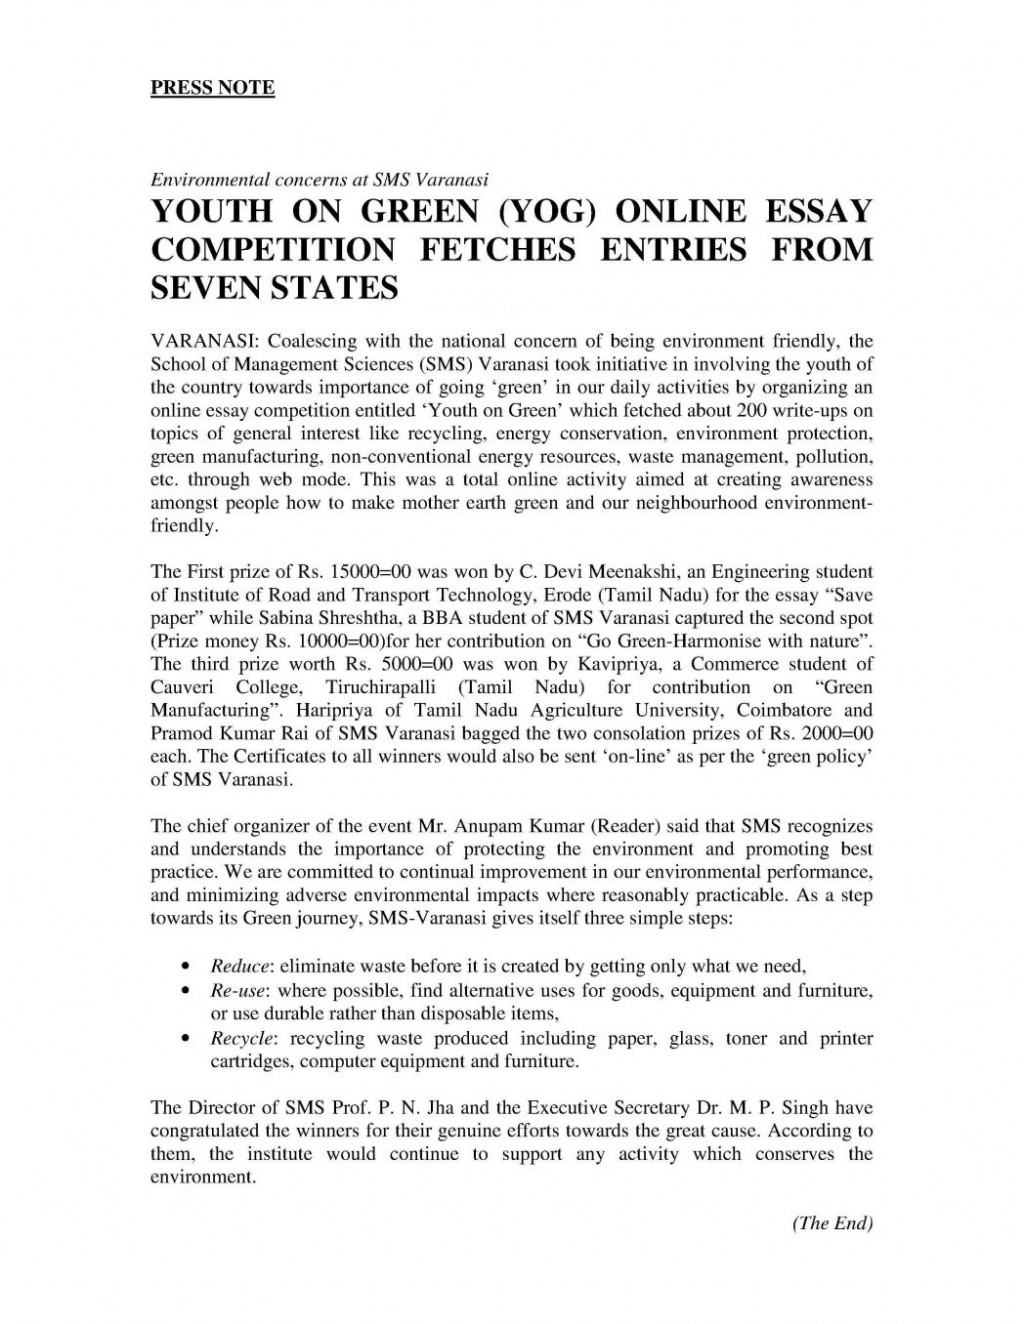 020 Best Essays For College Essay On Good Habits How Tot Application Online Yog Press Re About Yourself Examples Your Background Failure Prompt Off Hook 1048x1356 Example Amazing To Start An A Definition With Quote Large